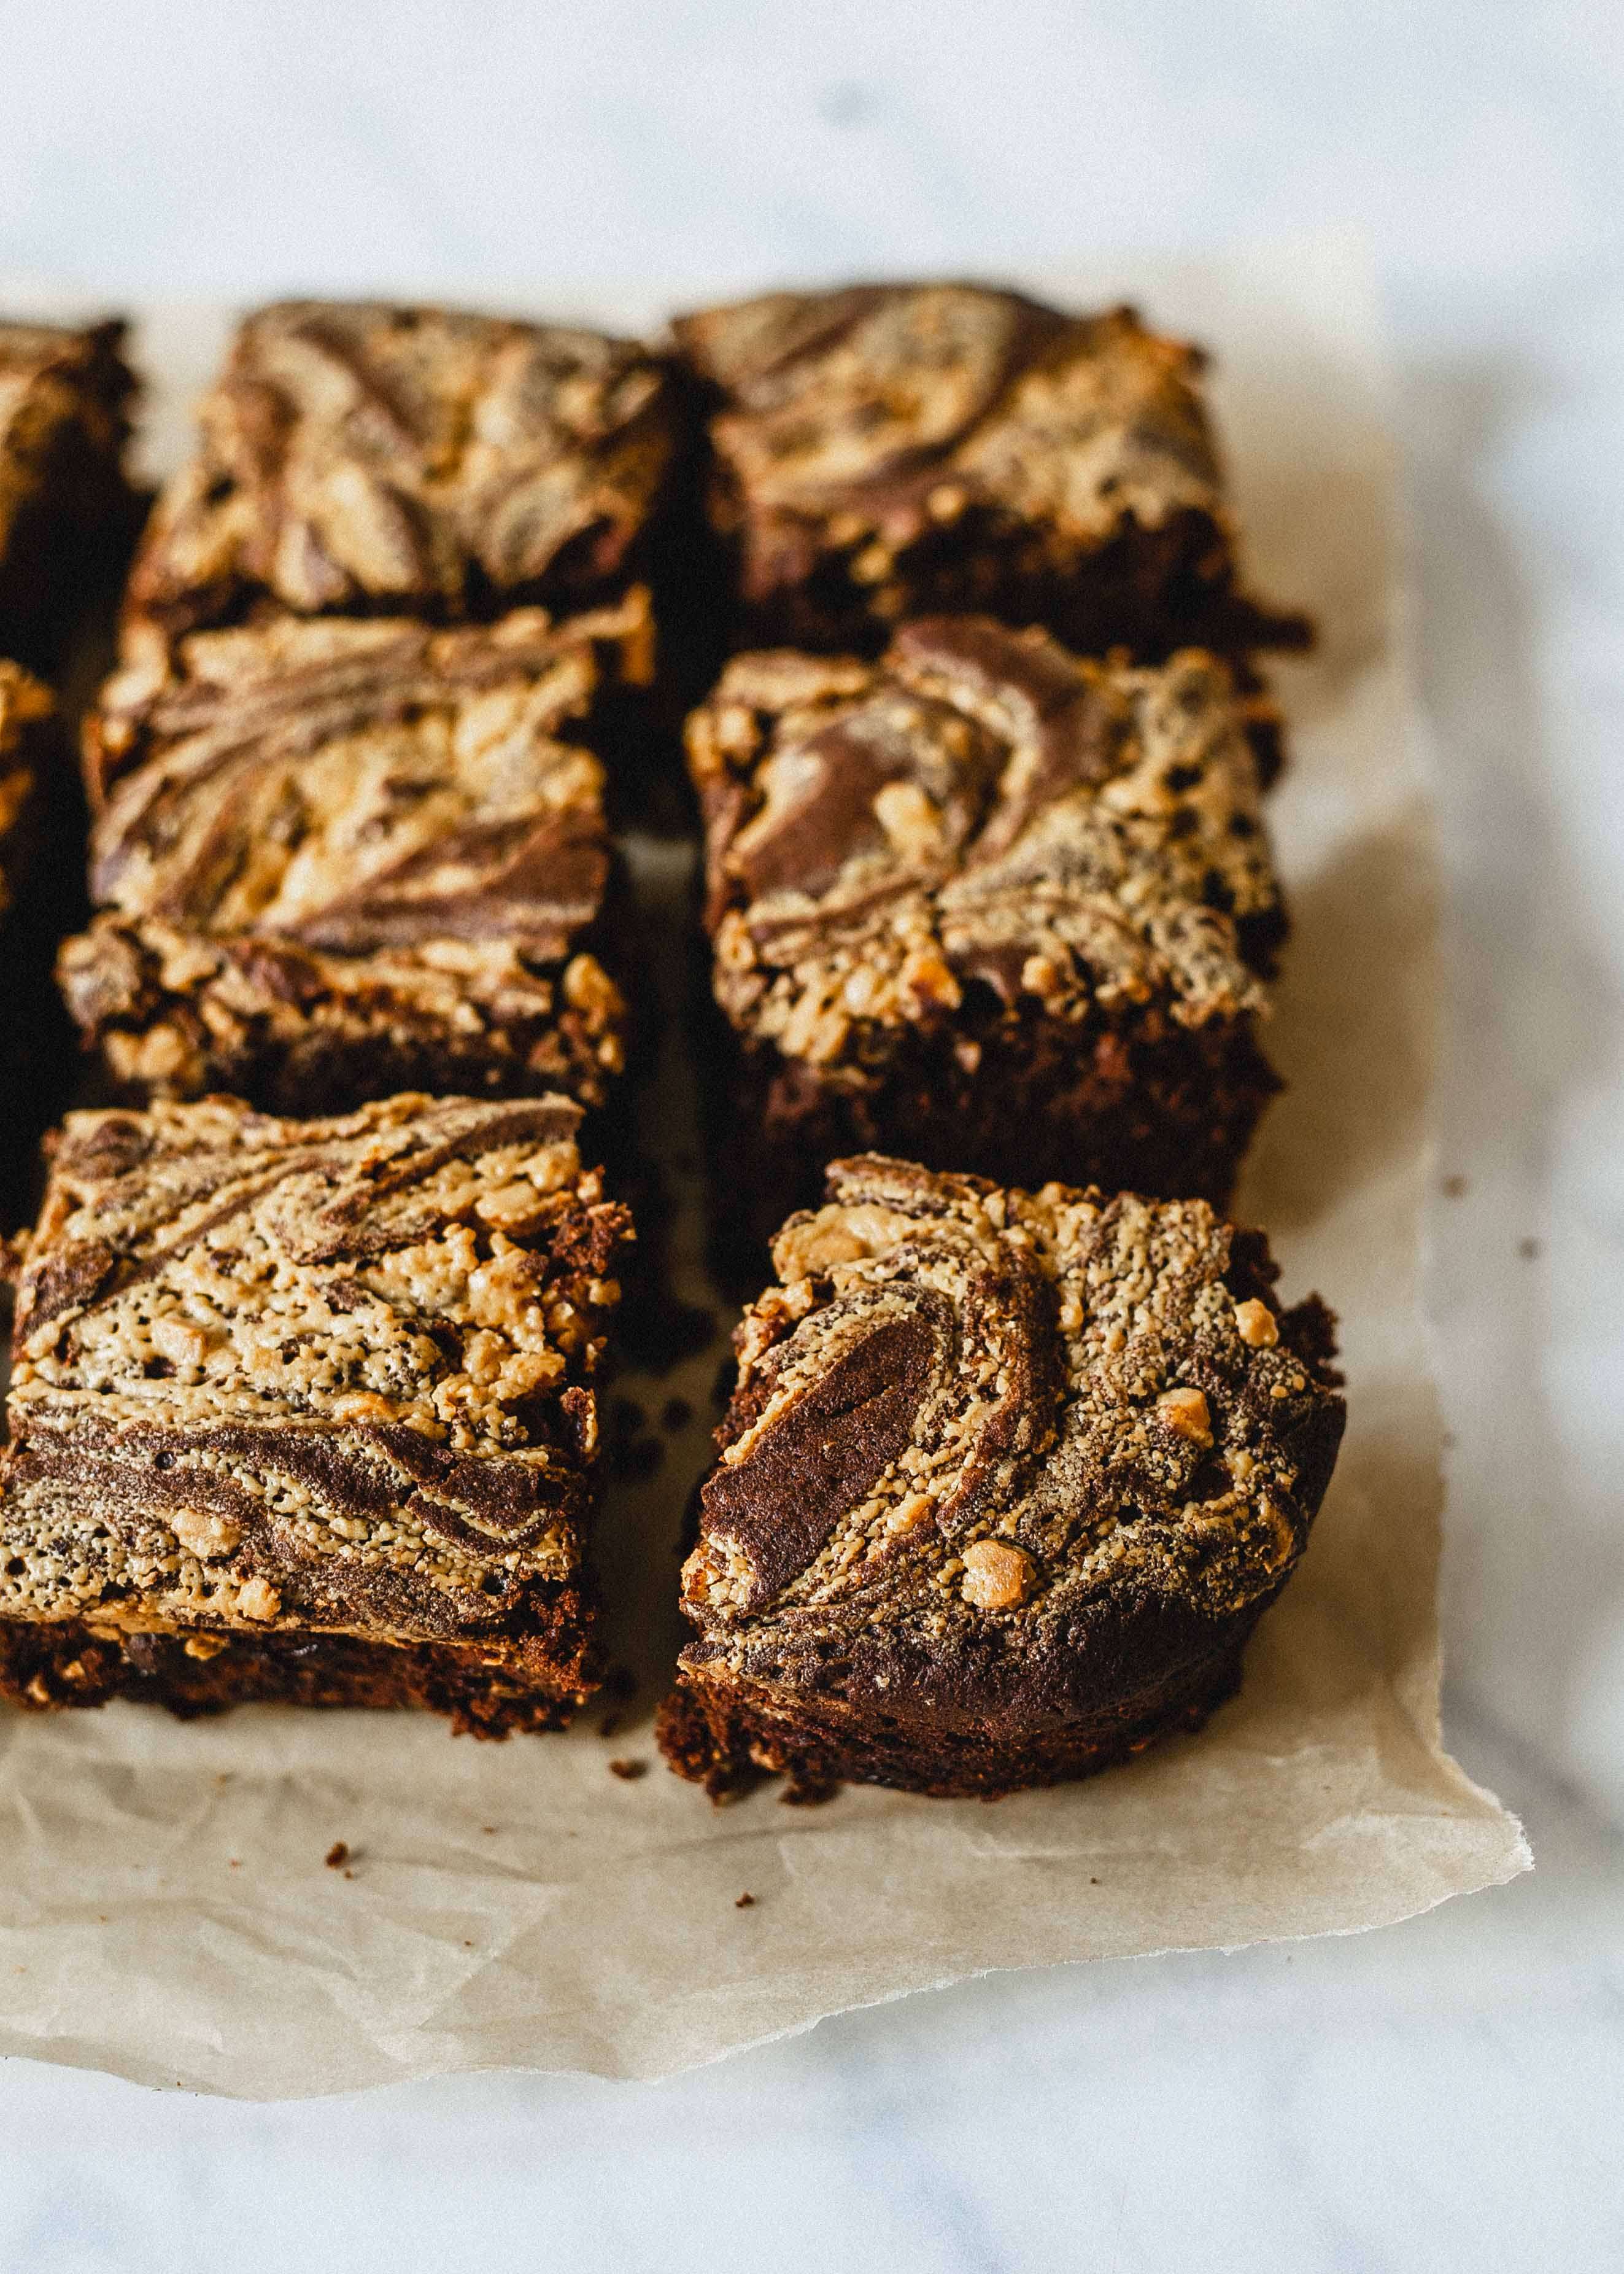 Low FODMAP peanut butter chocolate tray bake